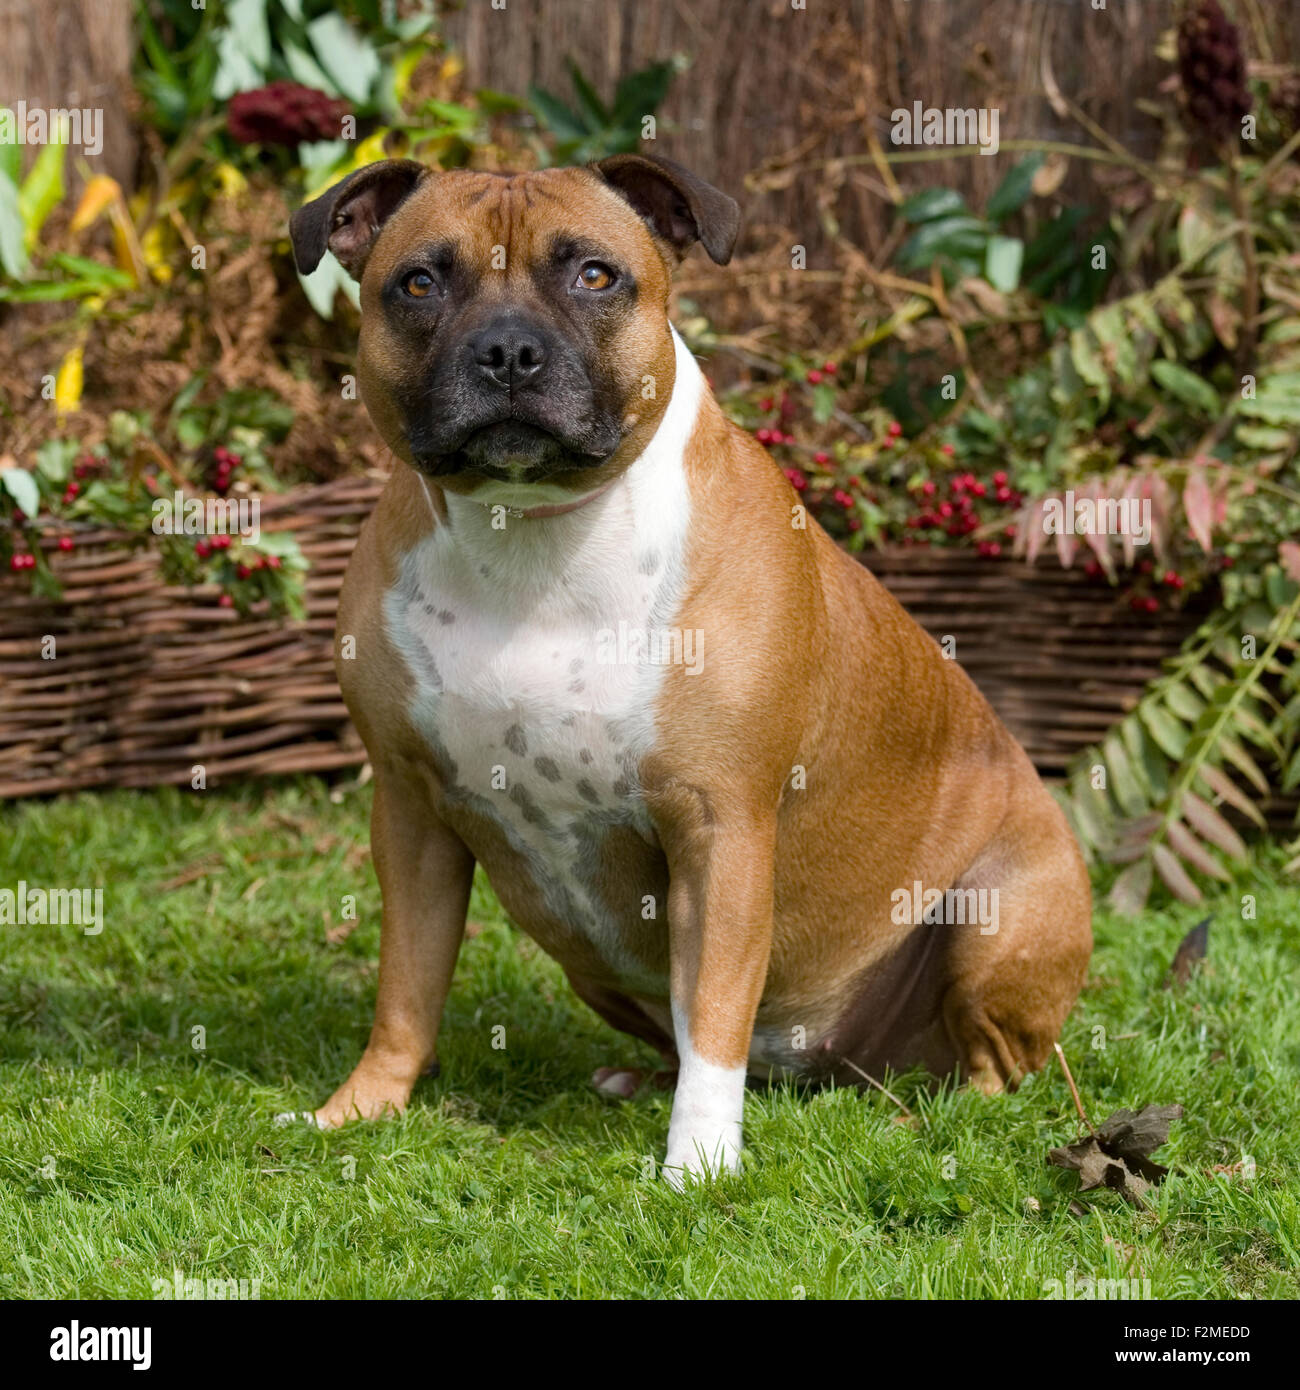 staffordshire bull terrier, sitting dog - Stock Image